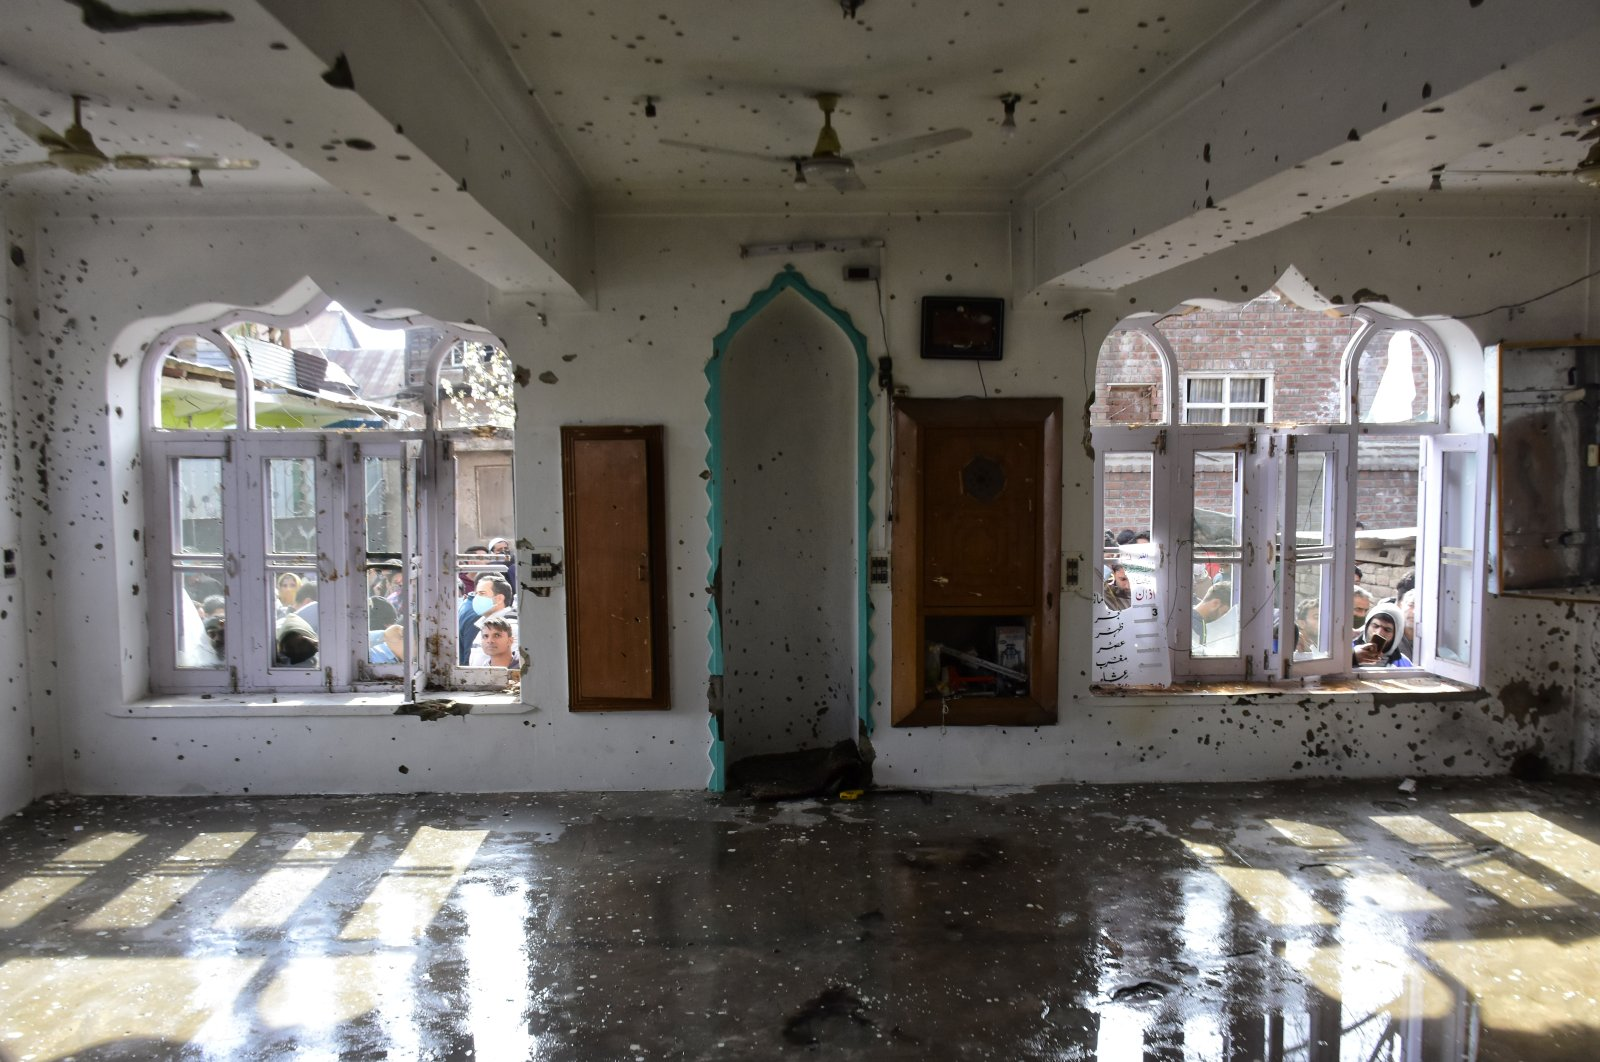 The interior of a mosque damaged in a clash between Indian forces and Kashmiri protestors, in the Shopian district of Indian-occupied Kashmir, April 9, 2021. (Photo by Getty Images)